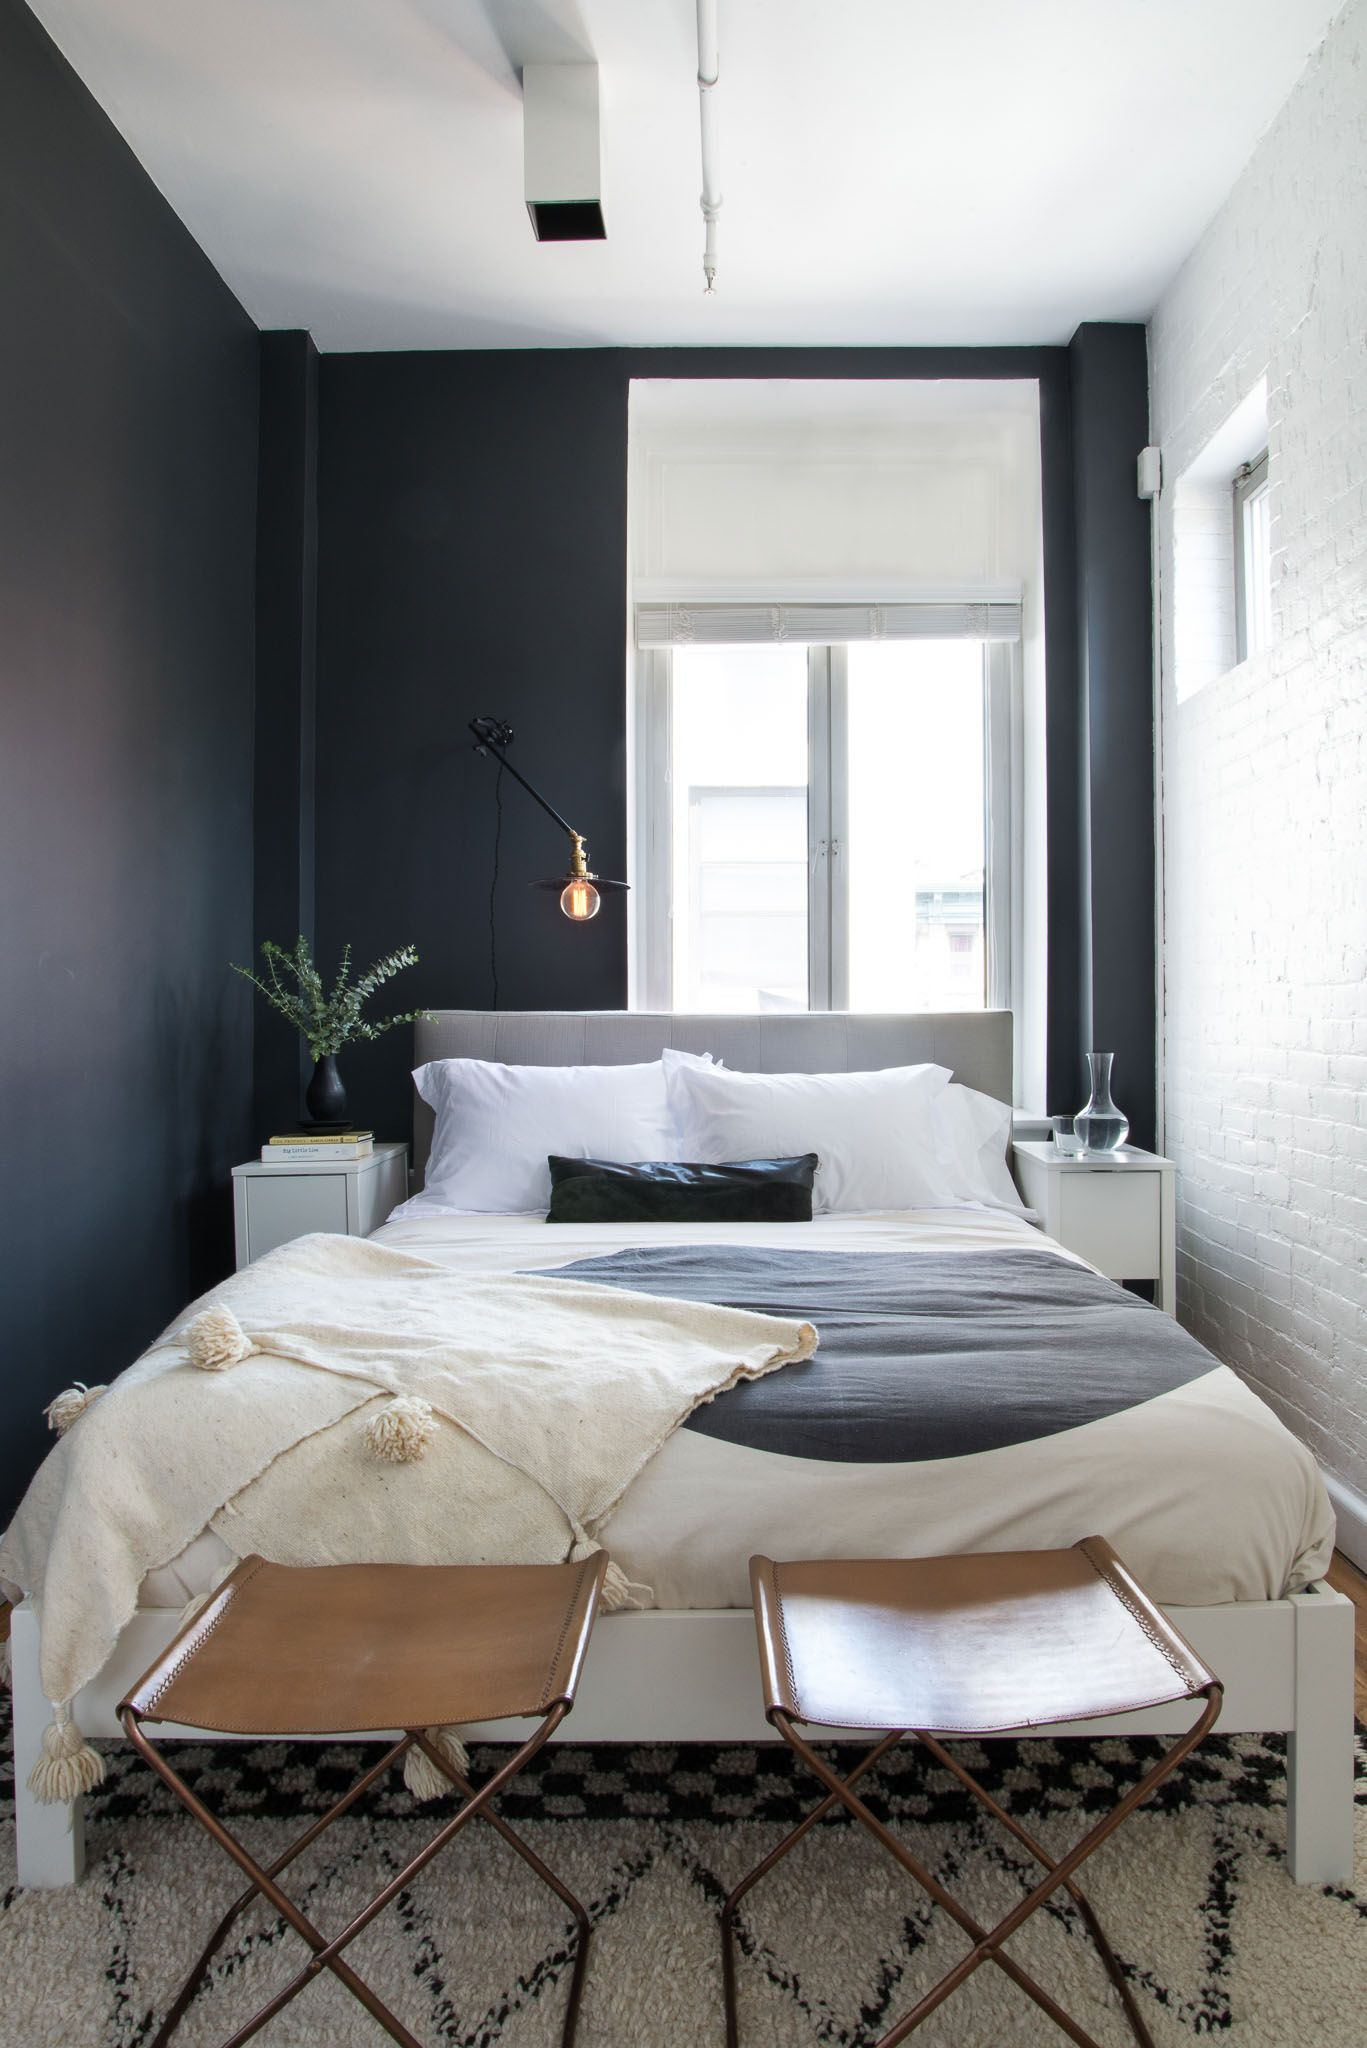 A Striking, Artful SoHo Loft | Tiny bedroom design, Small